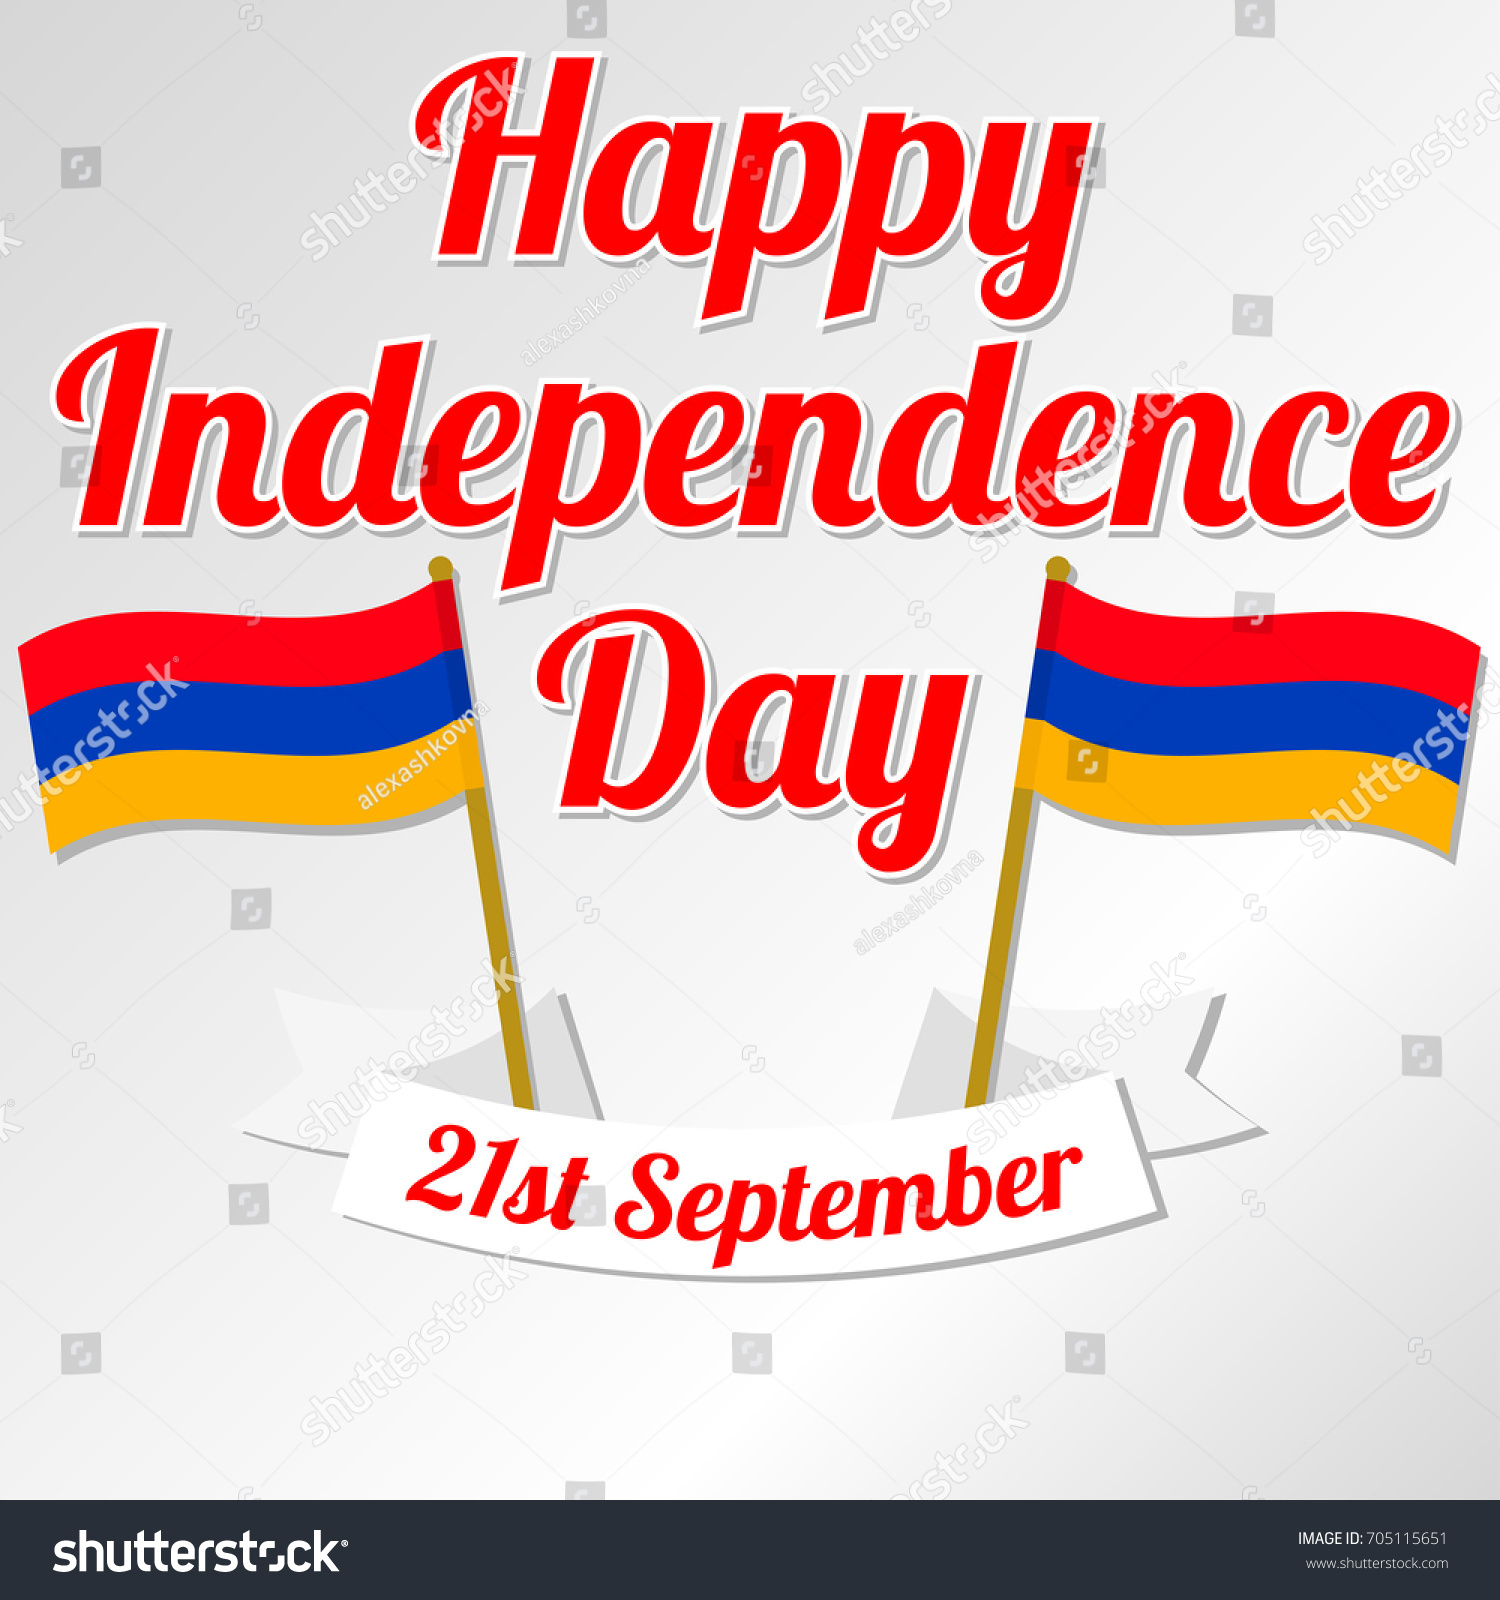 Happy Independence Day Armenia Vector Illustration Stock Vector